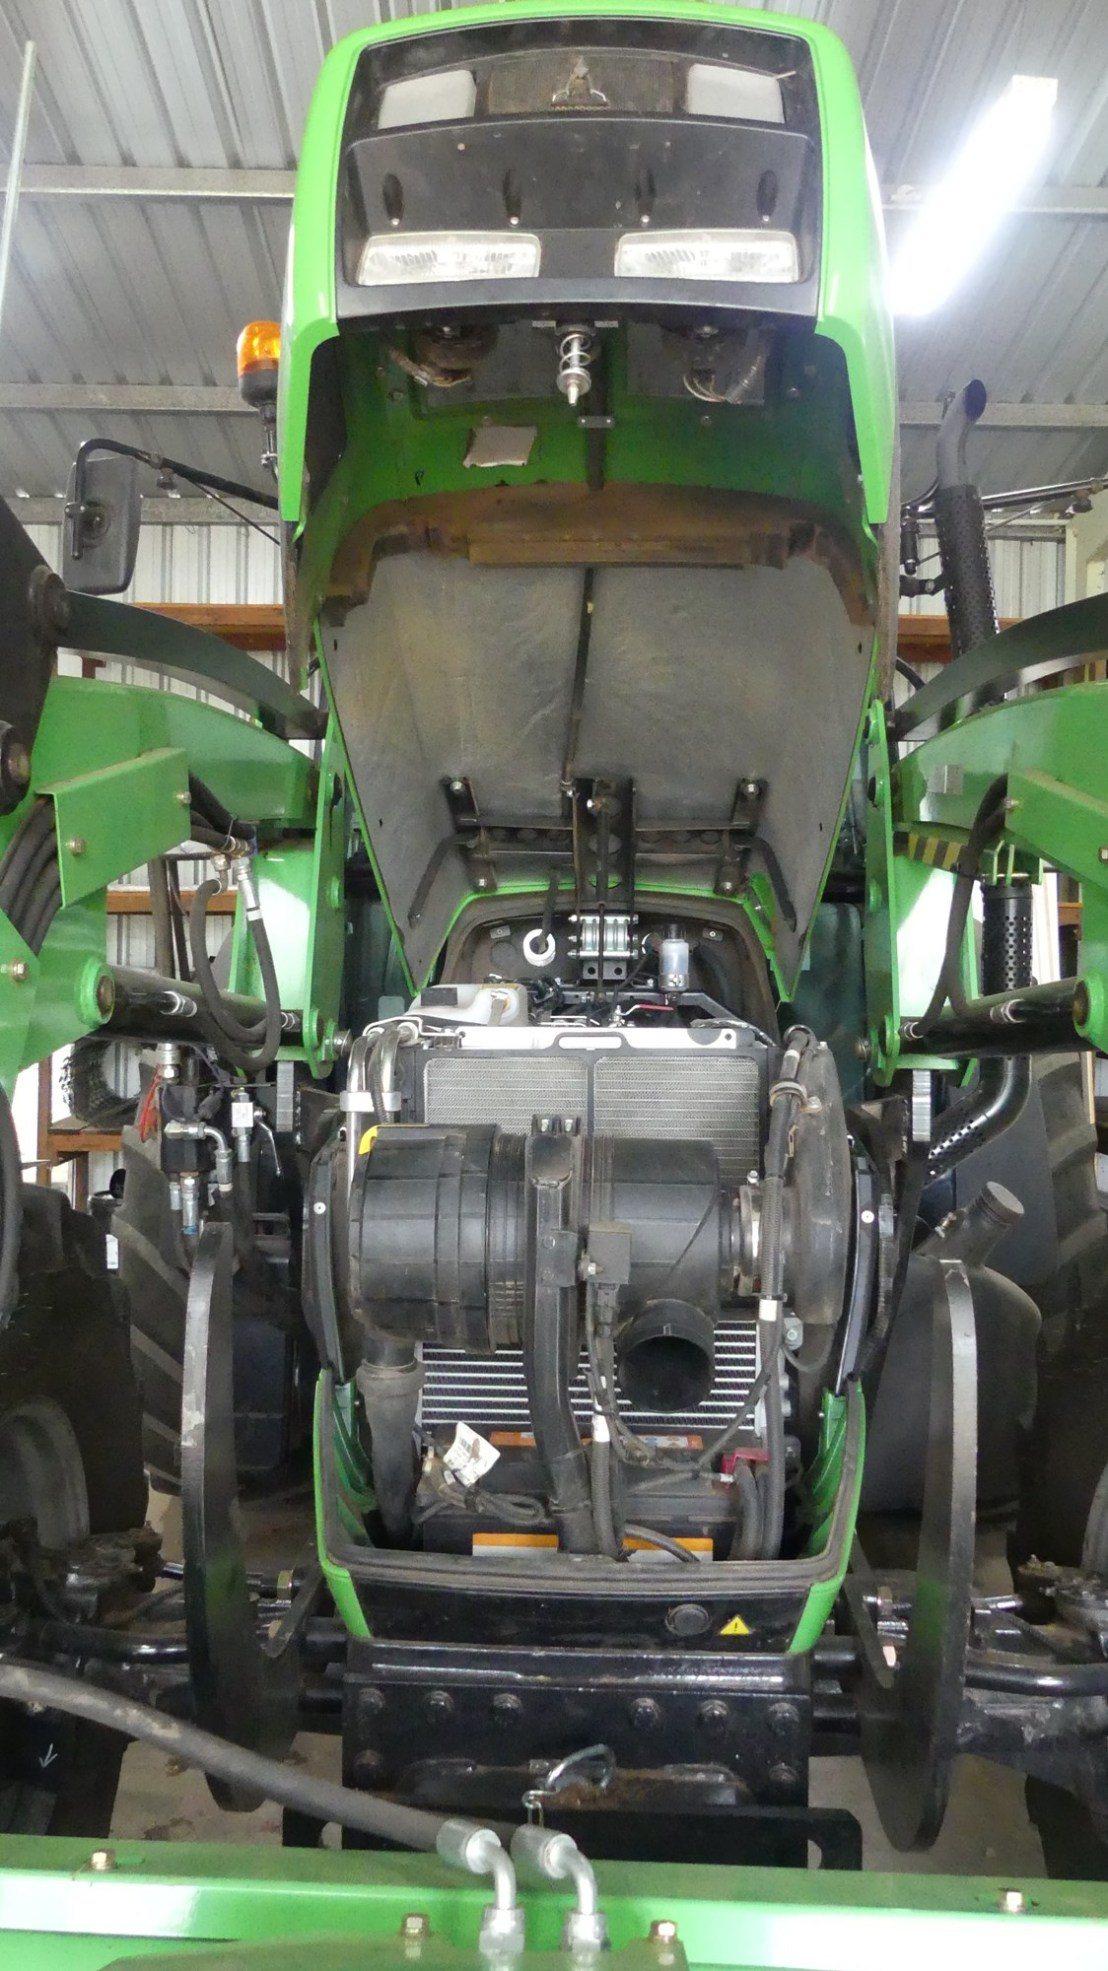 Tractor engine bay, April 2020.